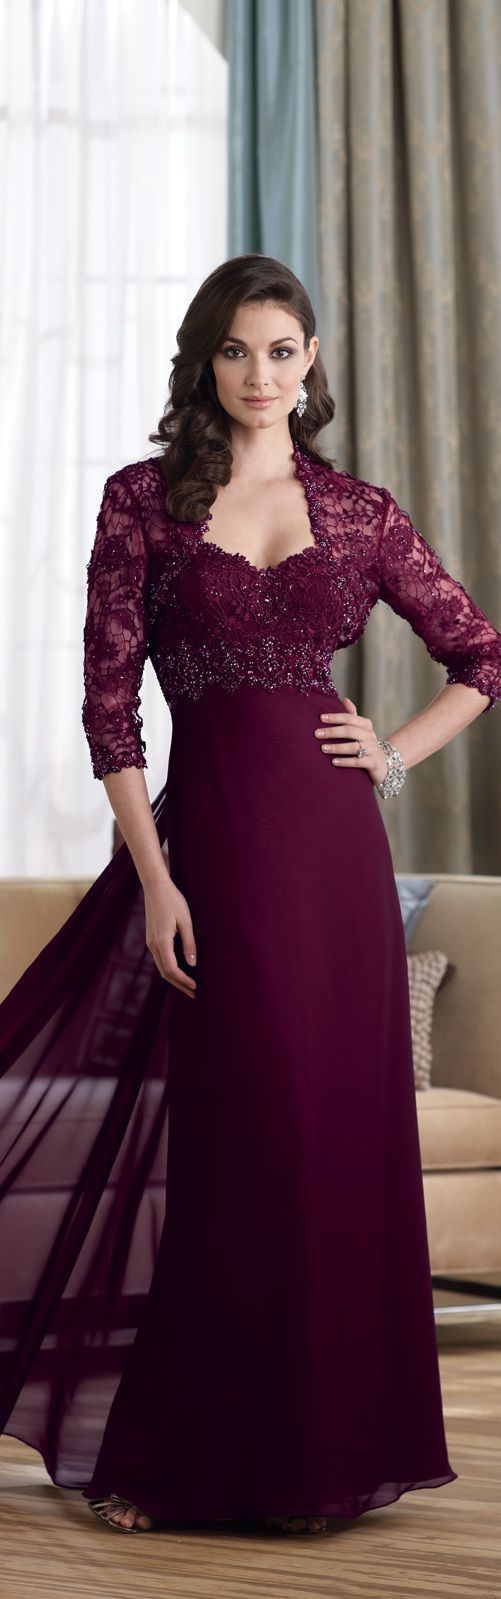 Fashion Gown - http://www.inews-news.com/women-s-world.html